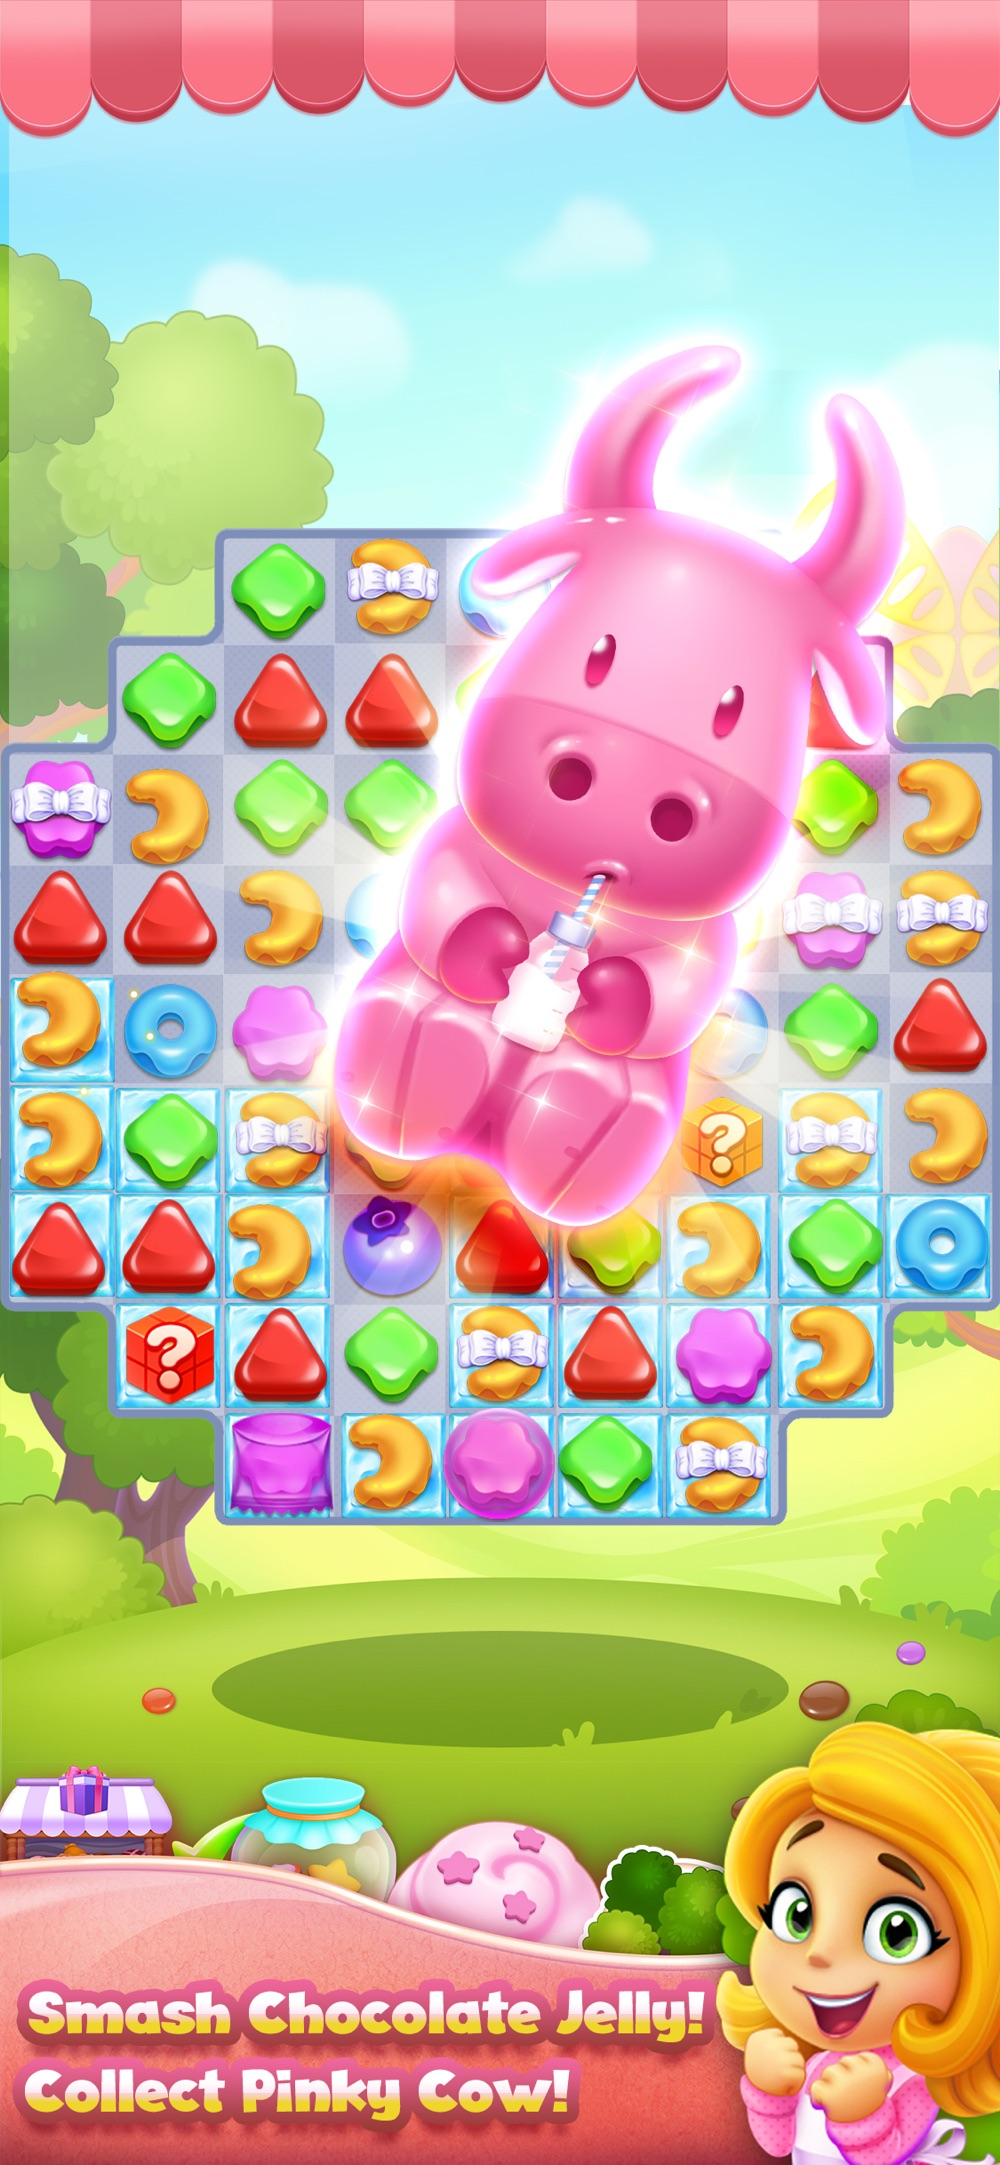 Cookie Yummy - Match 3 Puzzle hack tool